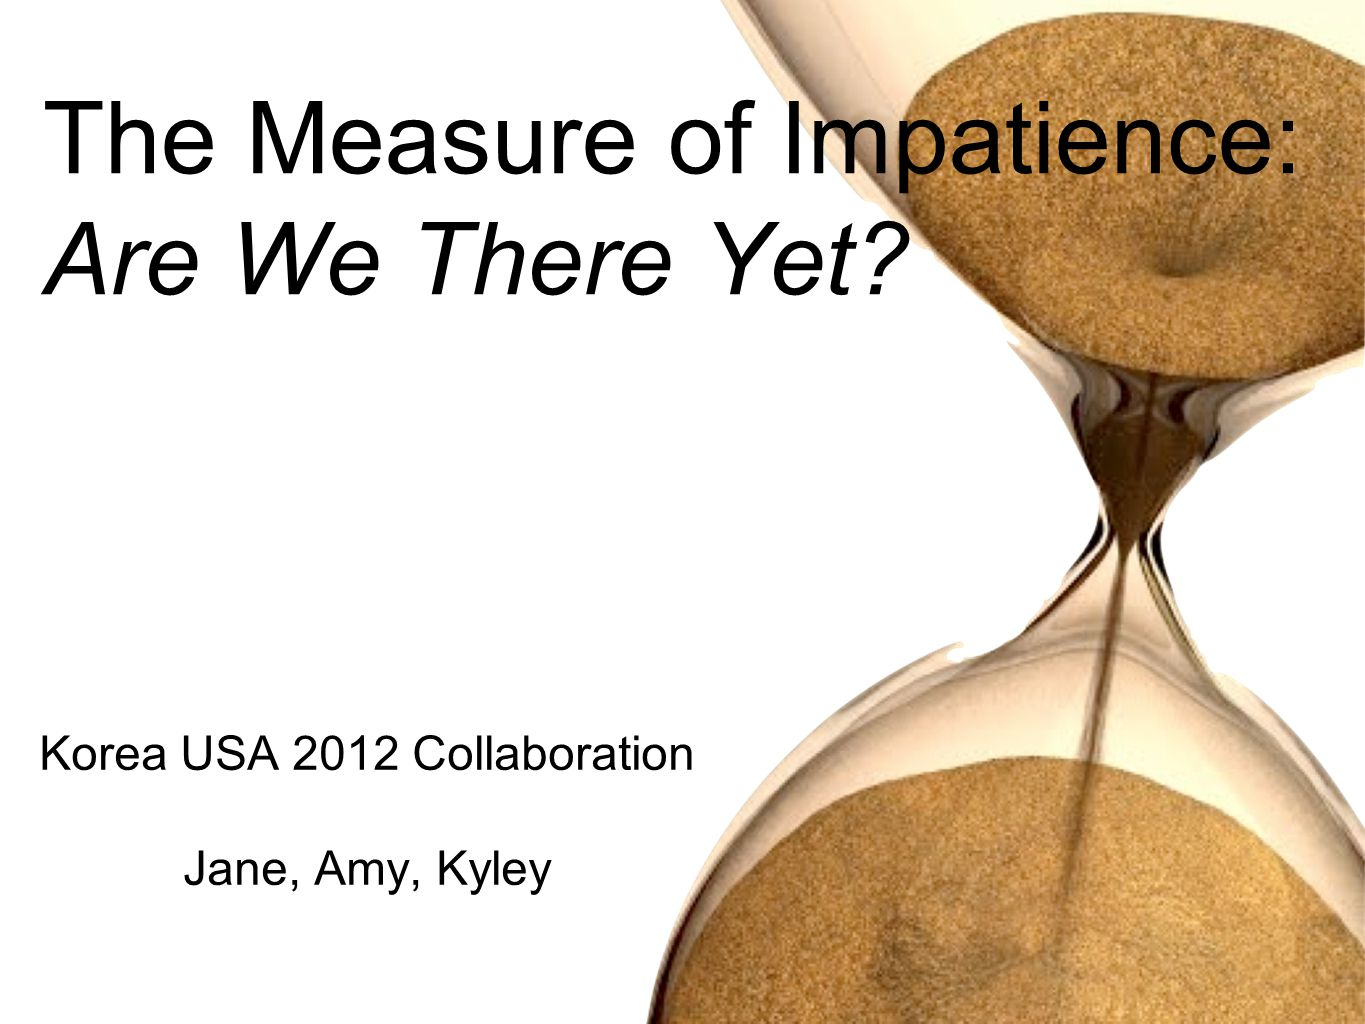 Korea USA 2012 Collaboration Jane, Amy, Kyley The Measure of Impatience: Are We There Yet